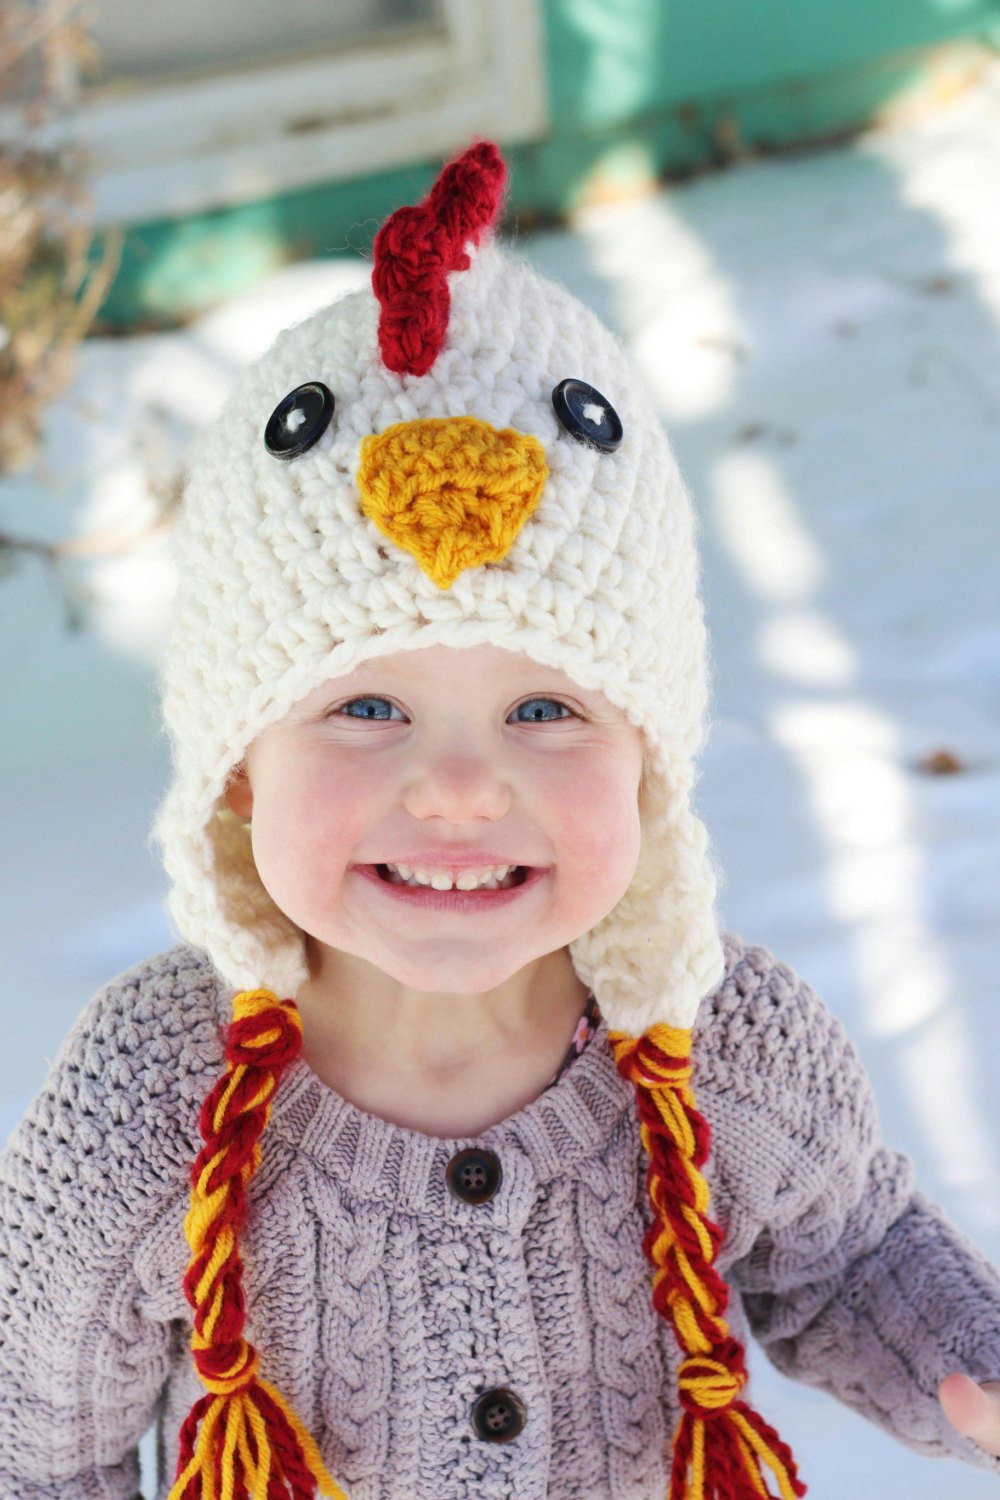 Awesome Chicken Hat Pdf Crochet Pattern Photo Prop Winter Hat Baby Chicken Hat Of Awesome Cute Baby Chickens with Hats Baby Chicken Hat